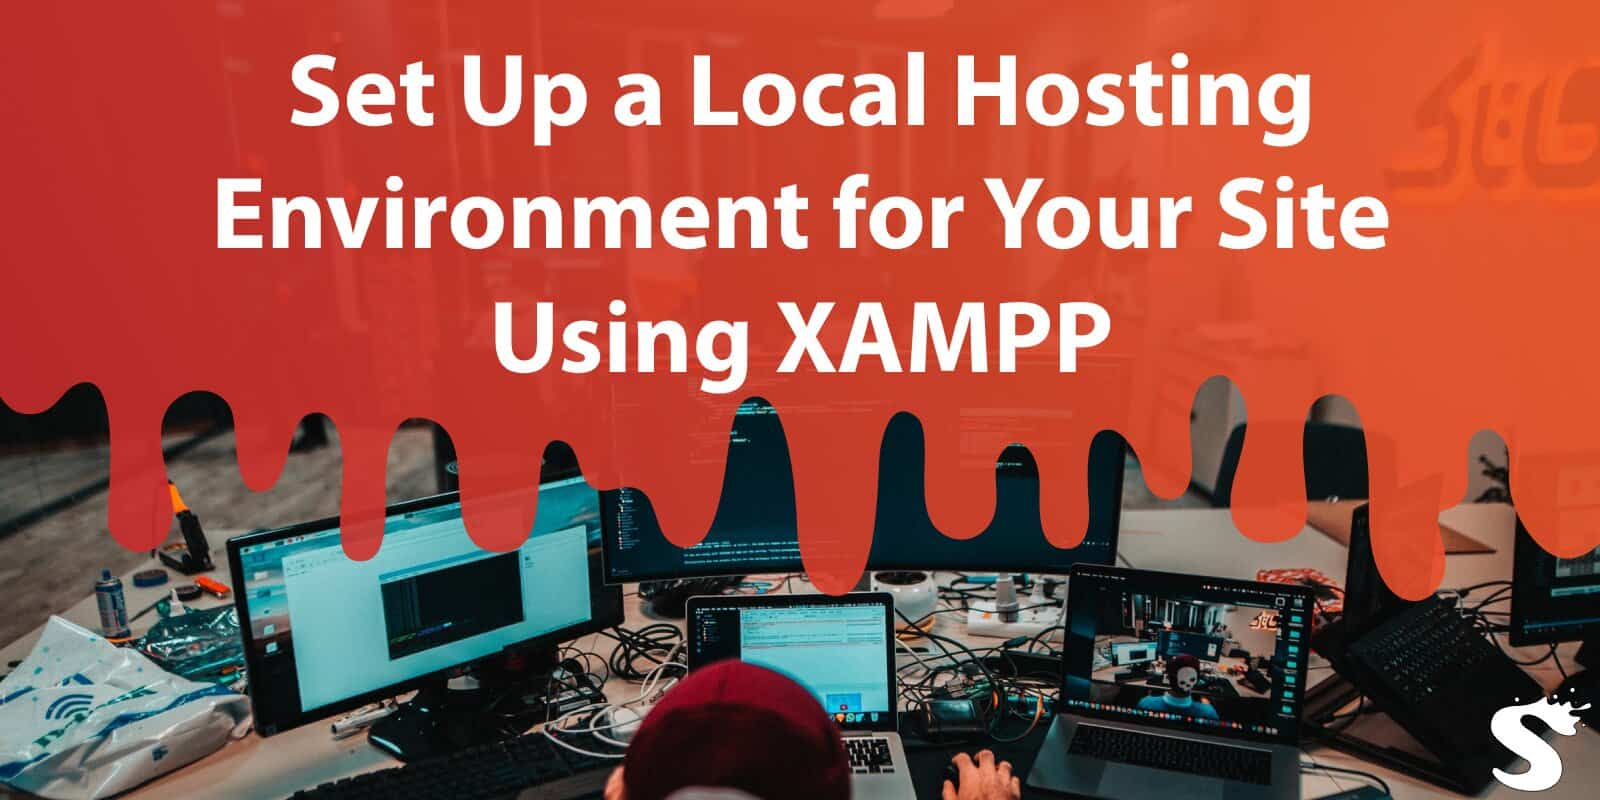 Set Up a Local Hosting Environment for Your Site Using XAMPP